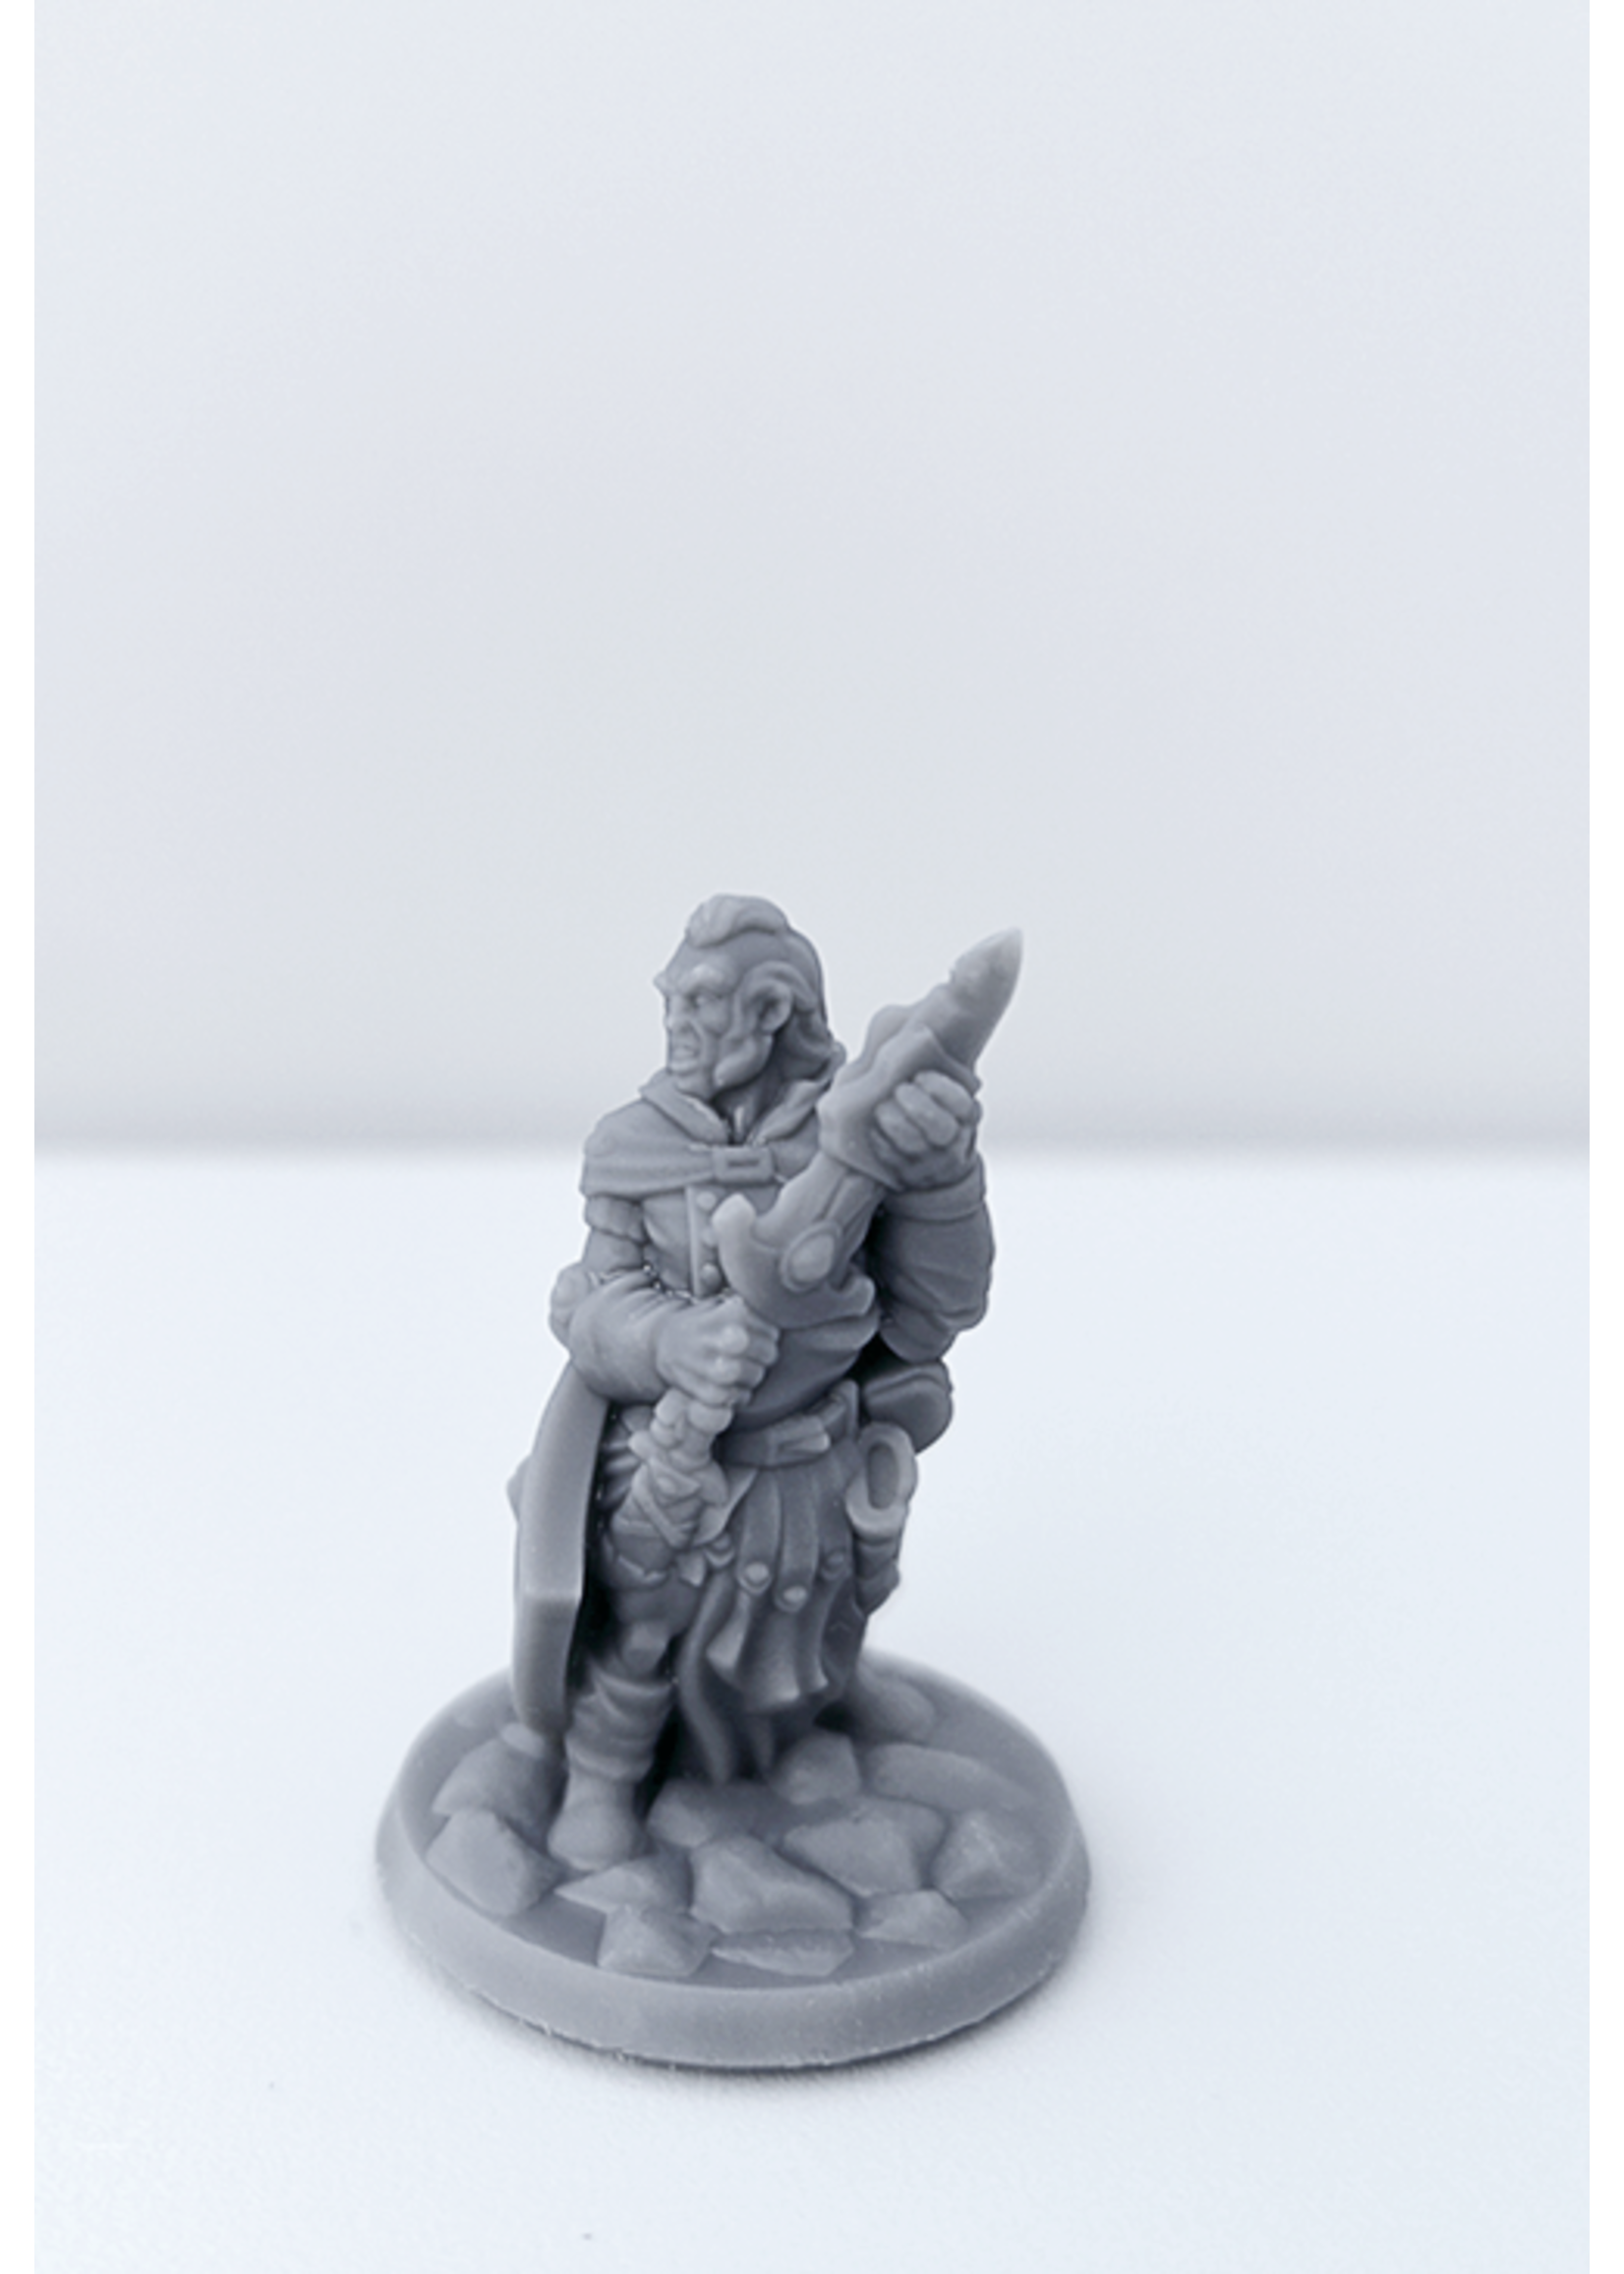 3D Printed Miniature - Fighter Male 02 - Dungeons & Dragons - Hero of the Realm KS